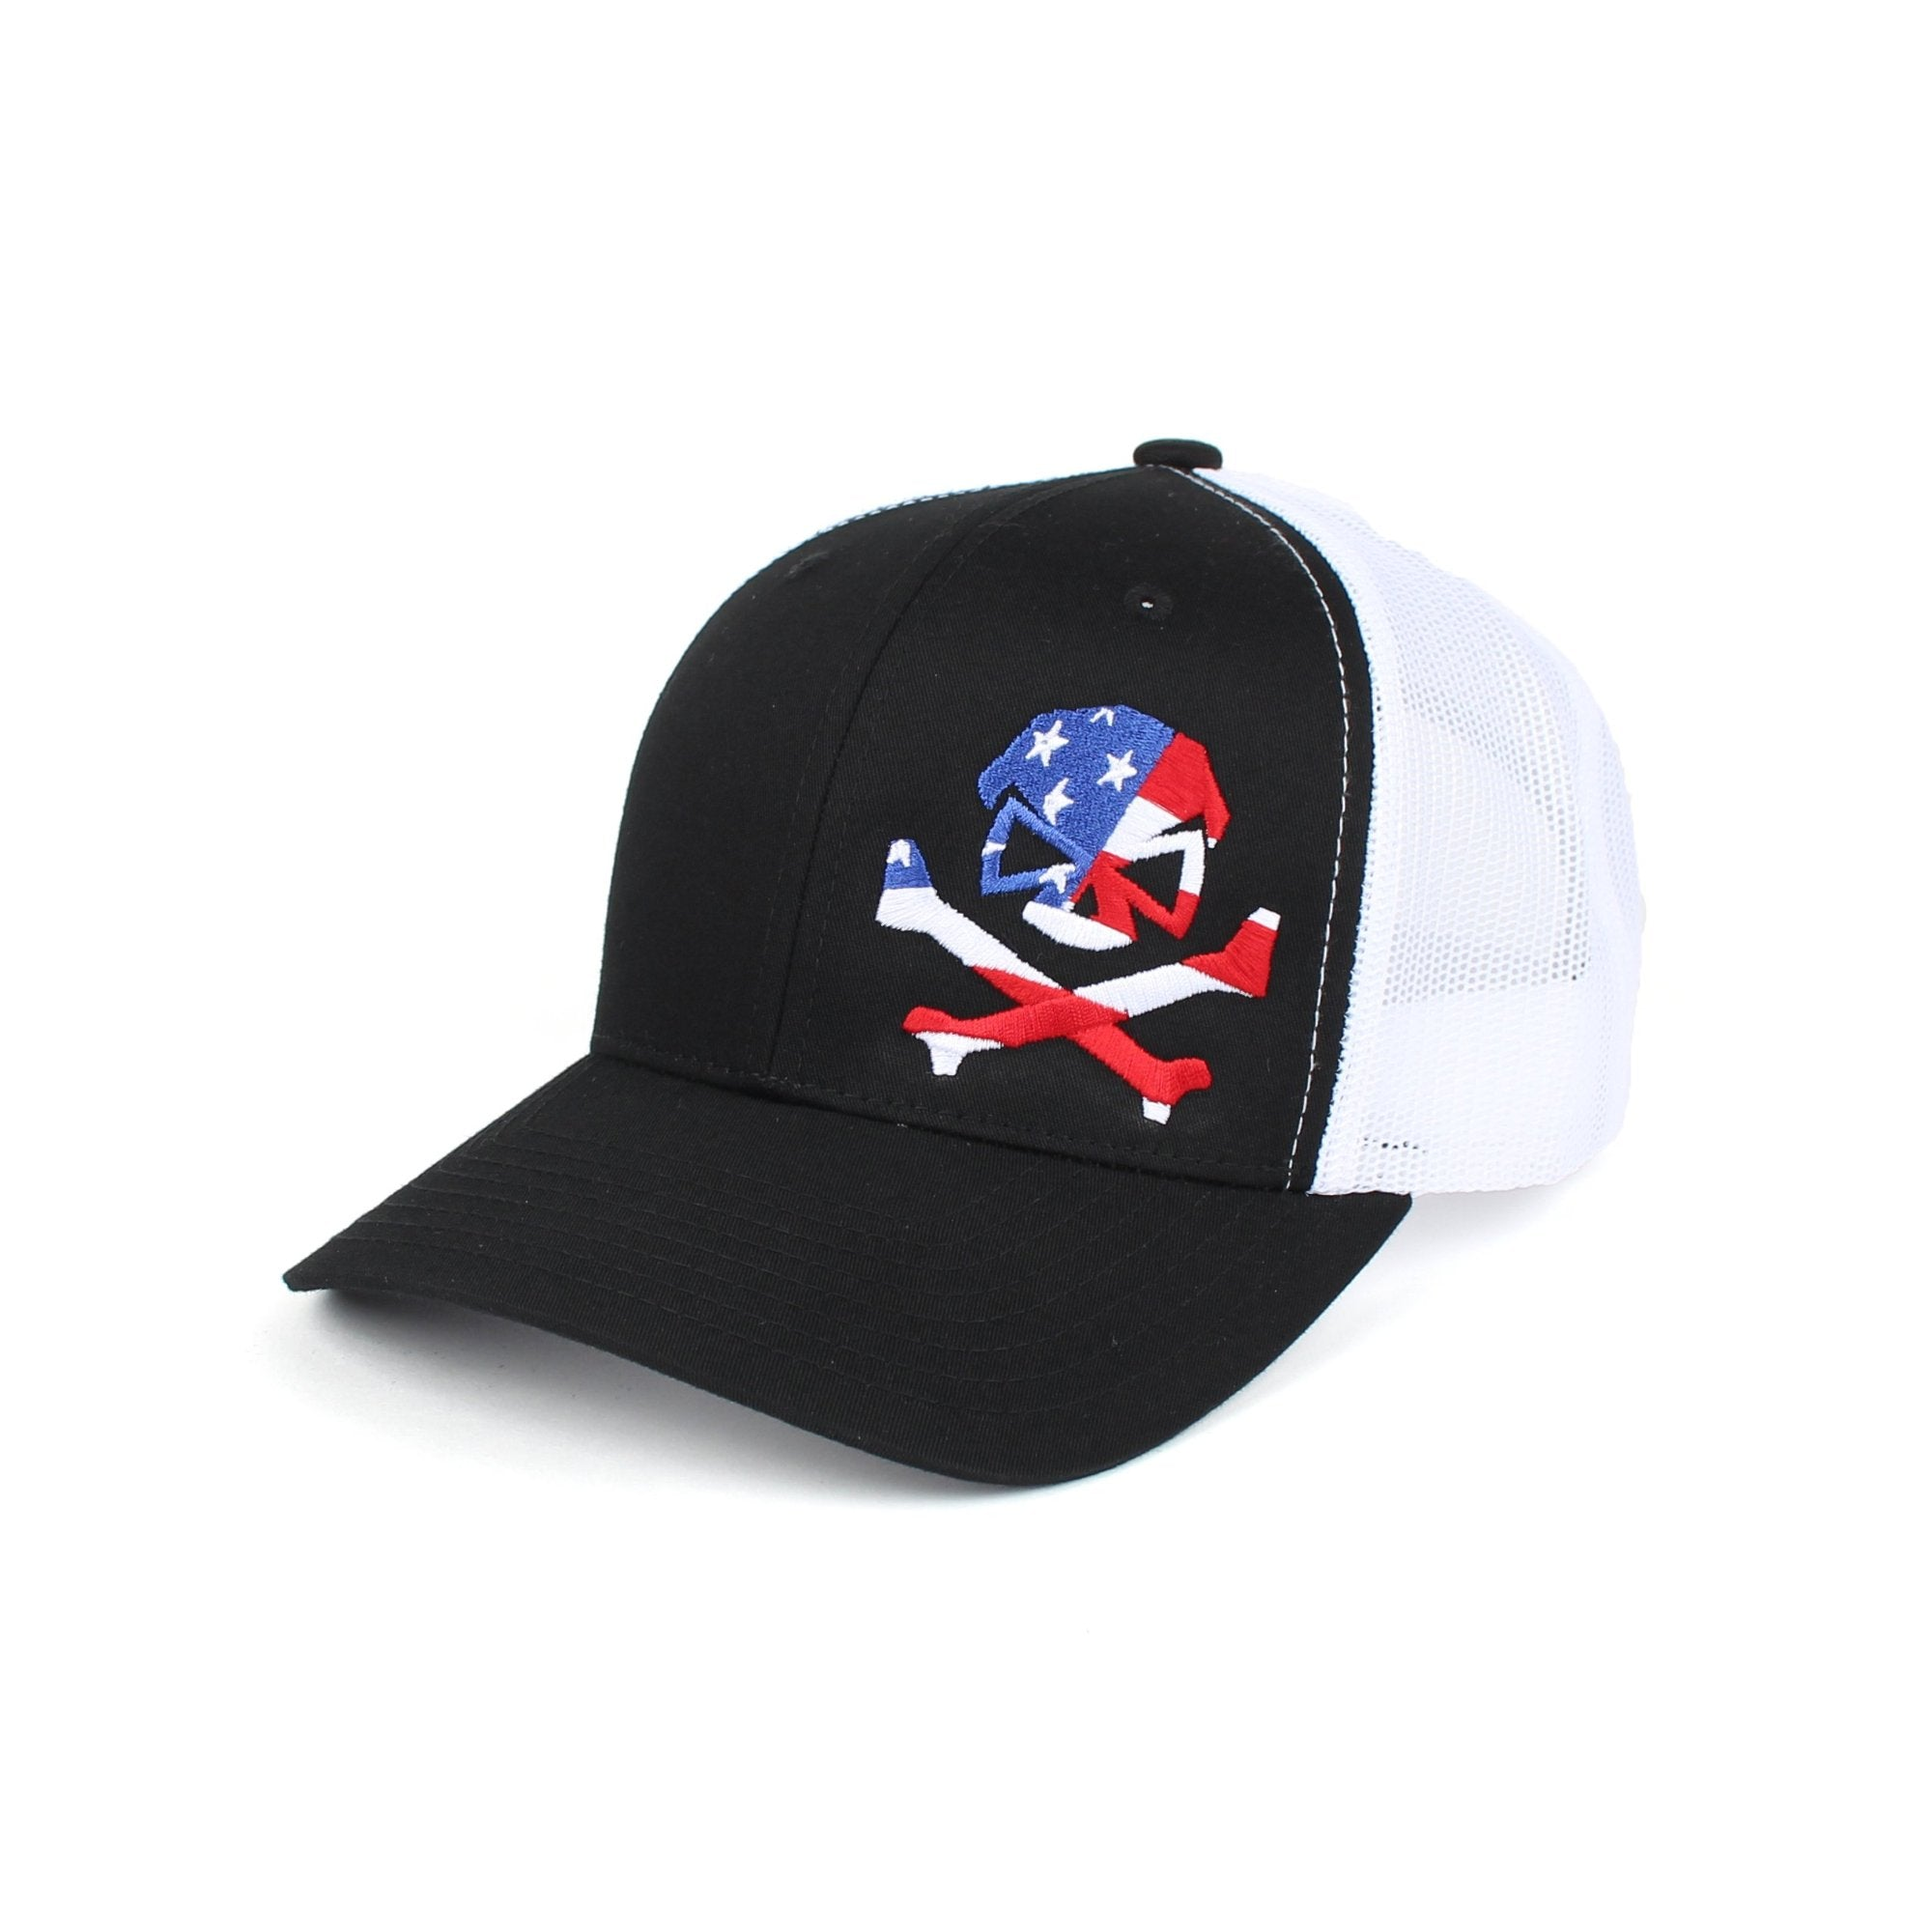 Patriot Trucker - Black/White - Hats - Pipe Hitters Union